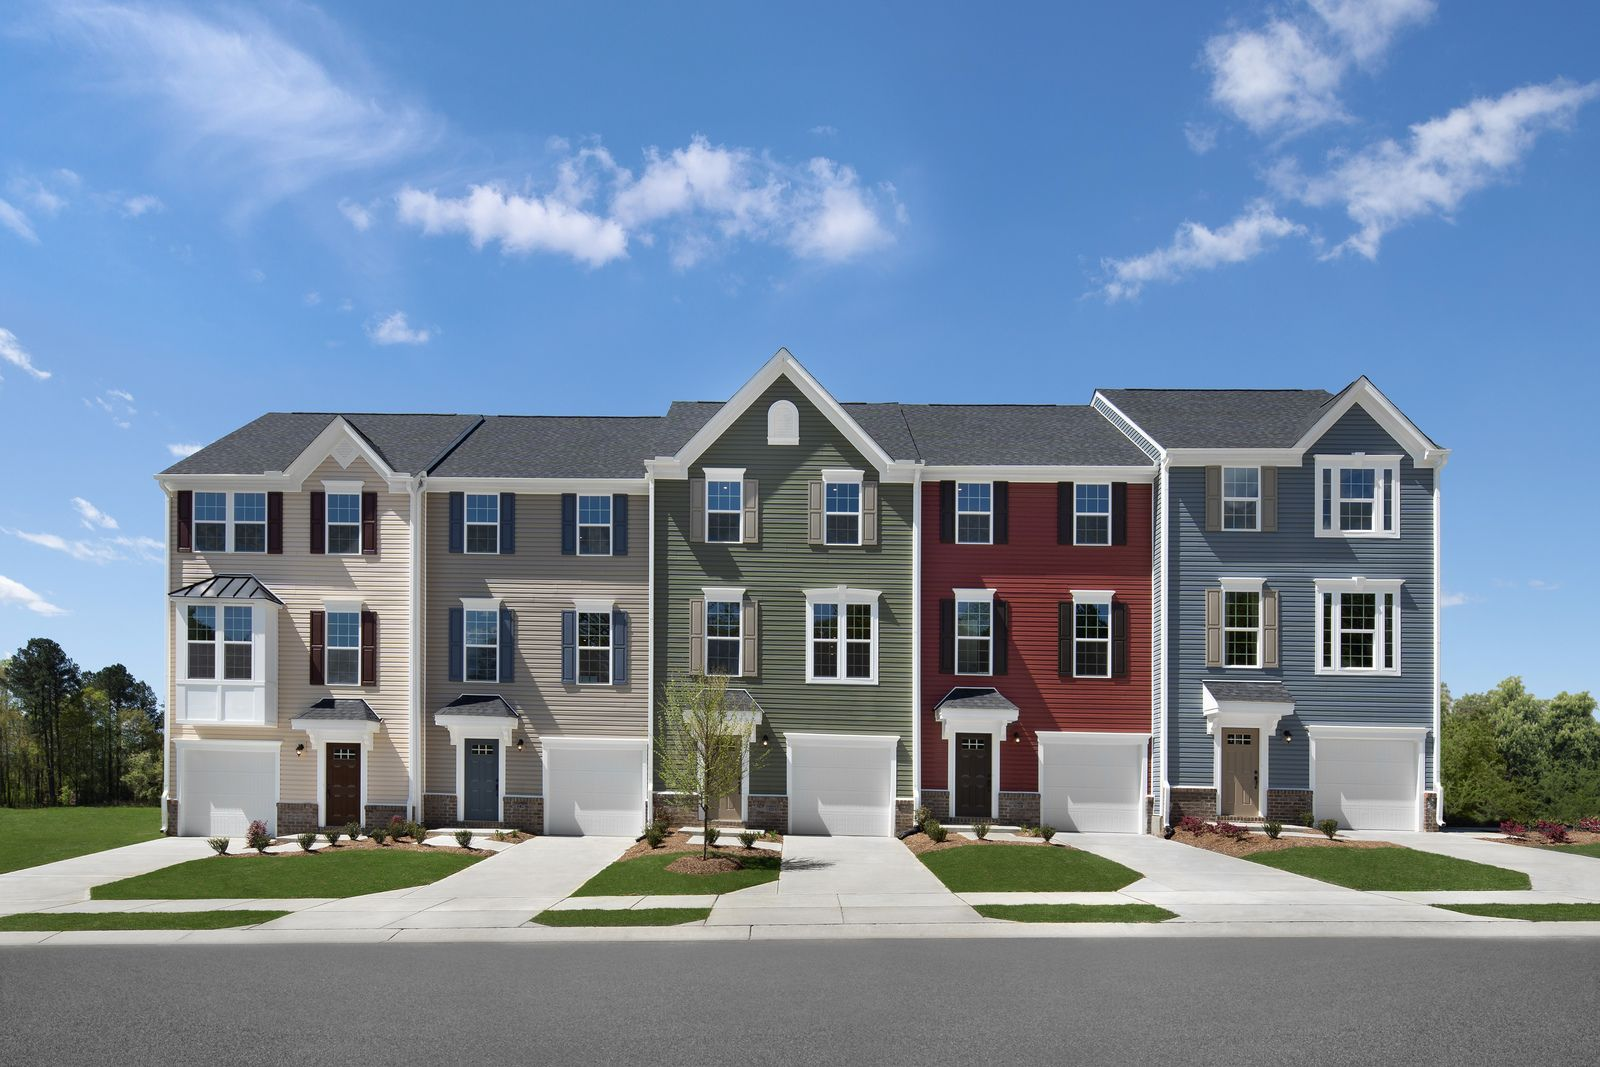 Lowest priced new 3-story townhomes in Southwest Wake County:Contact us to get more details on these affordable townhomes!